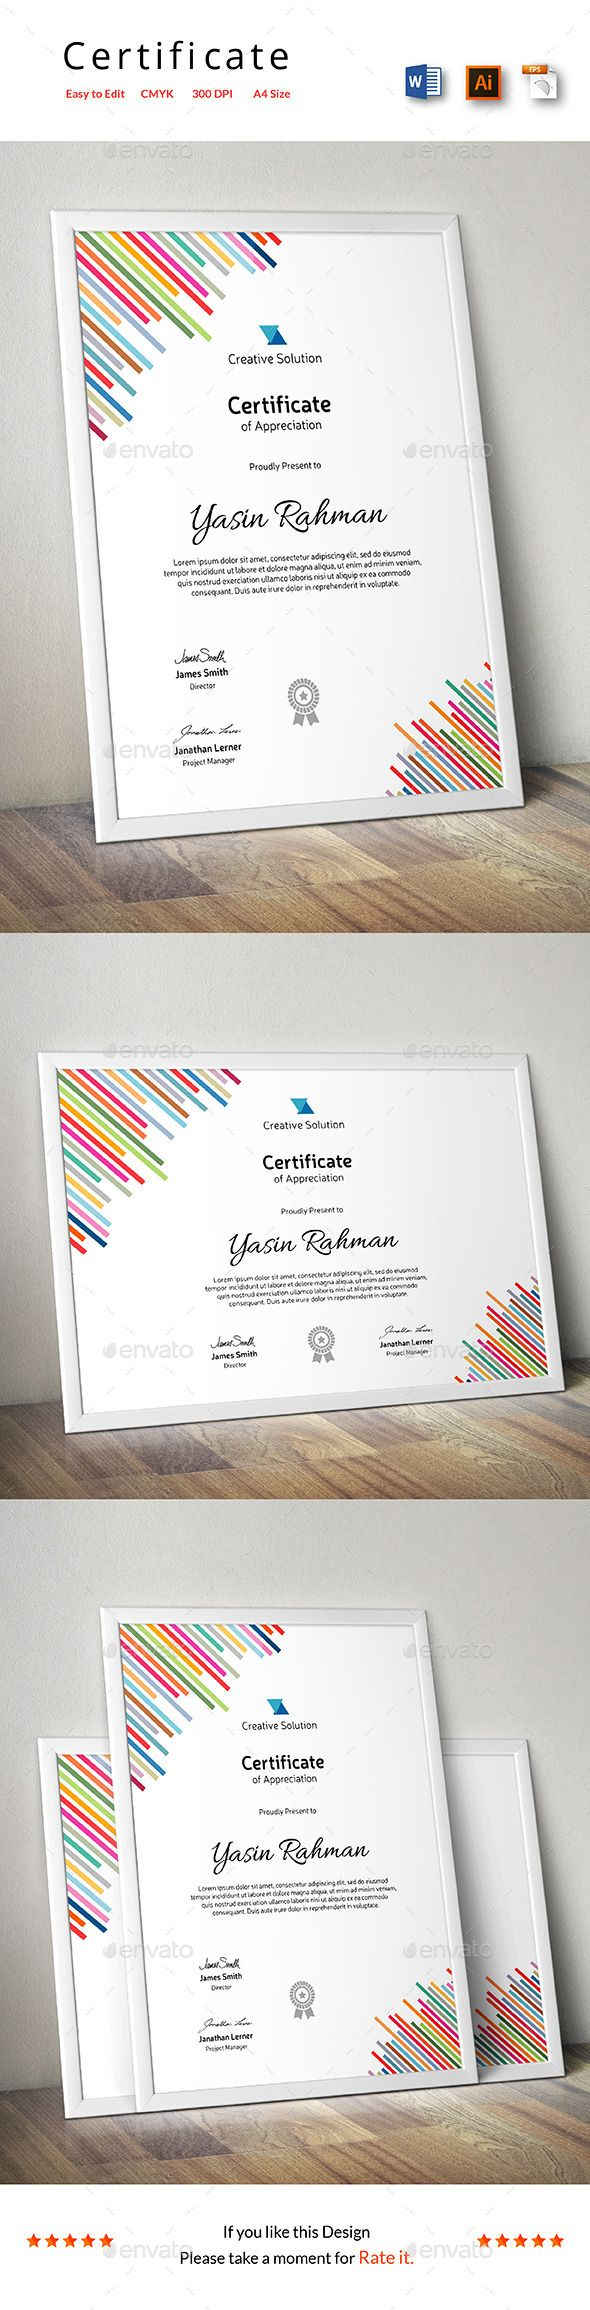 Certificate Template Vector EPS, AI. Download here: http://graphicriver.net/item/certificate/13759995?ref=ksioks